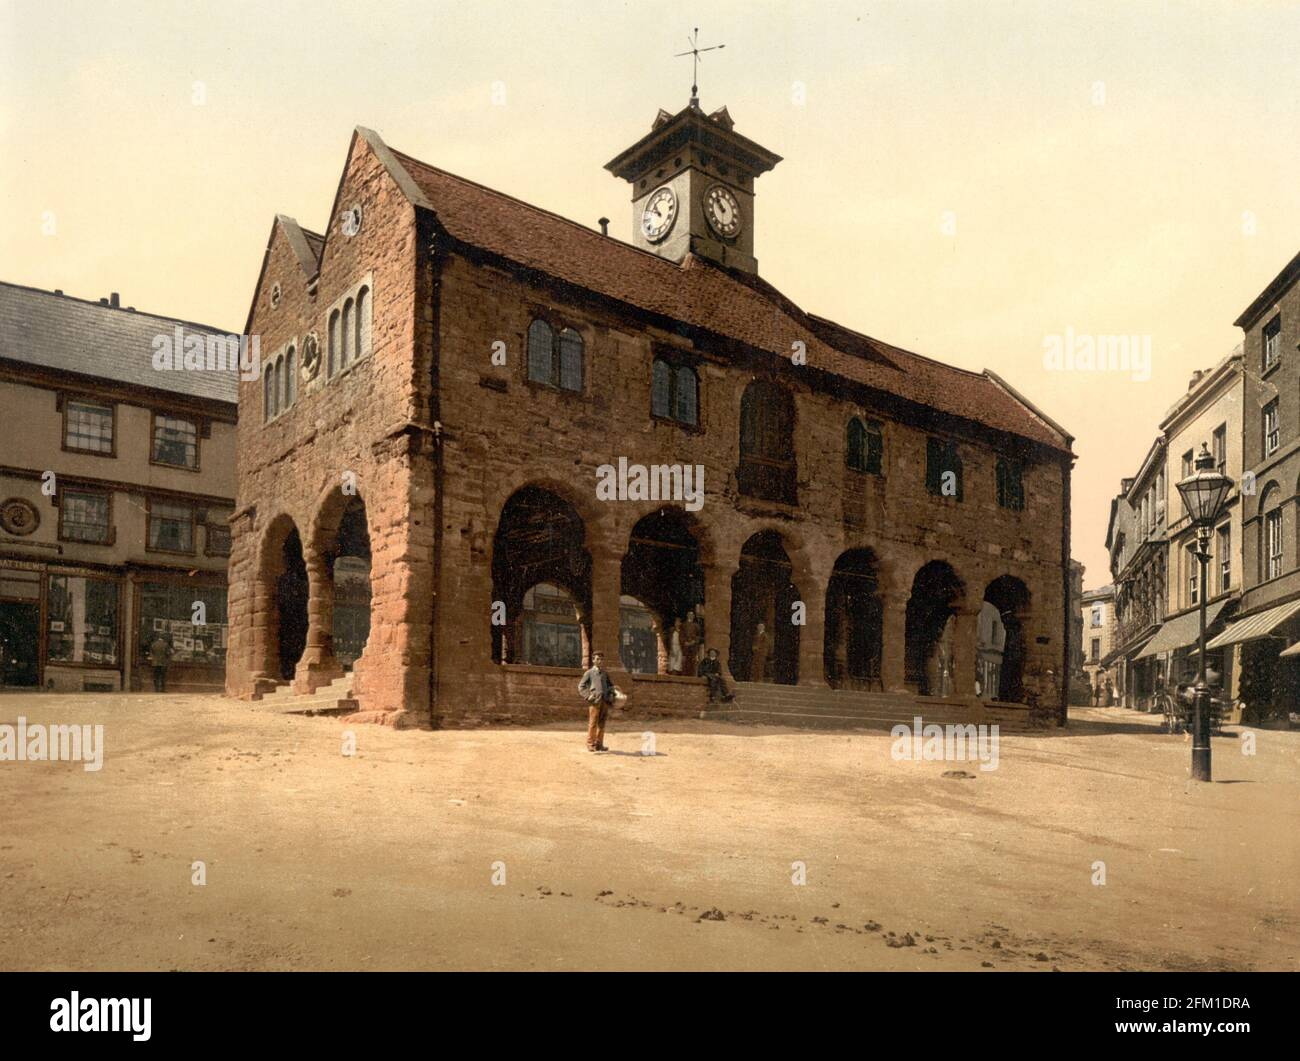 The Market House, Ross-on-Wye in Herefordshire, um 1890-1900 Stockfoto